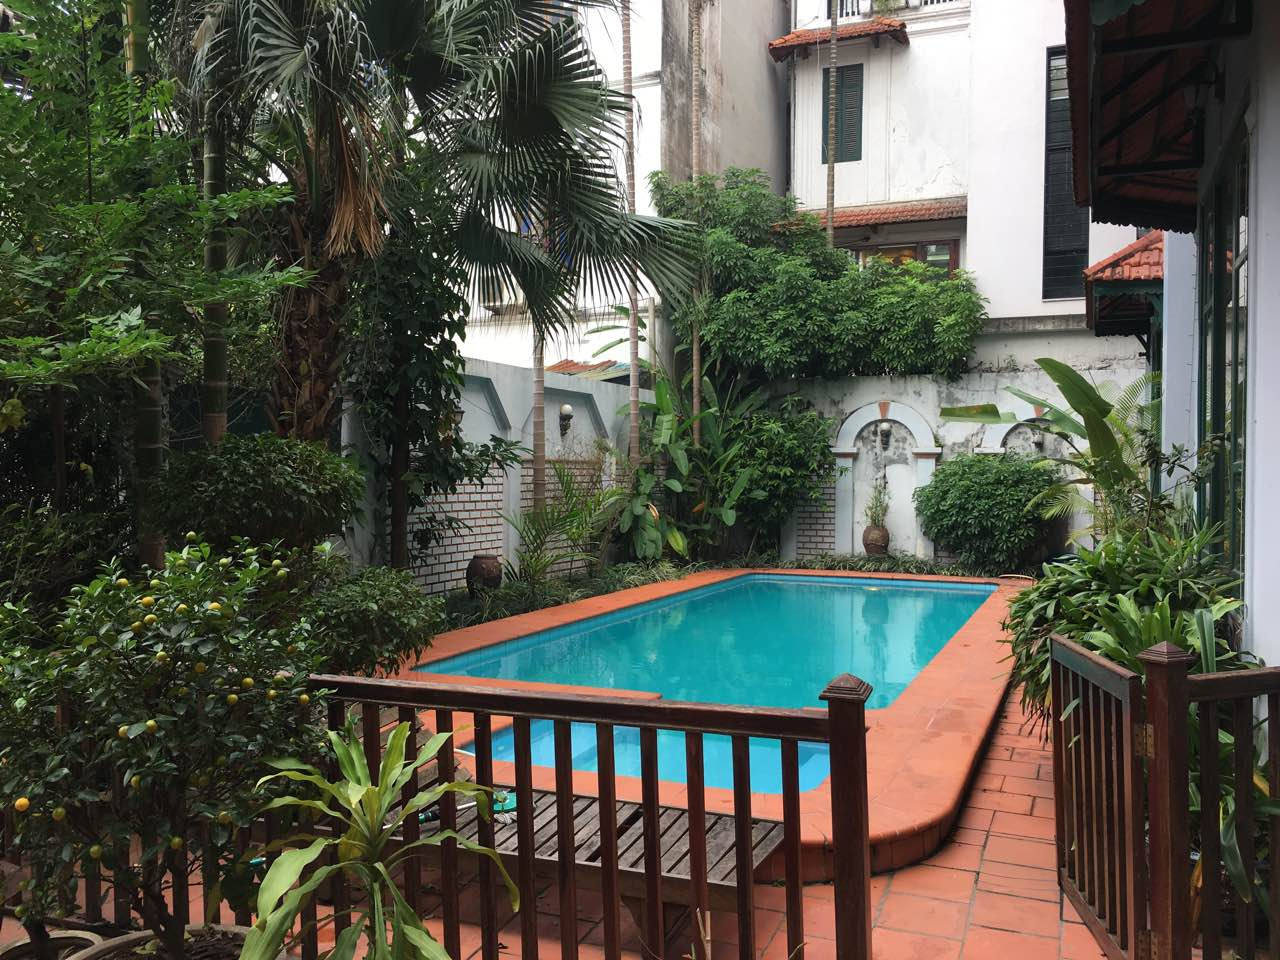 Beautiful villa with garden and swimming pool on To Ngoc Van street, Tay Ho district!